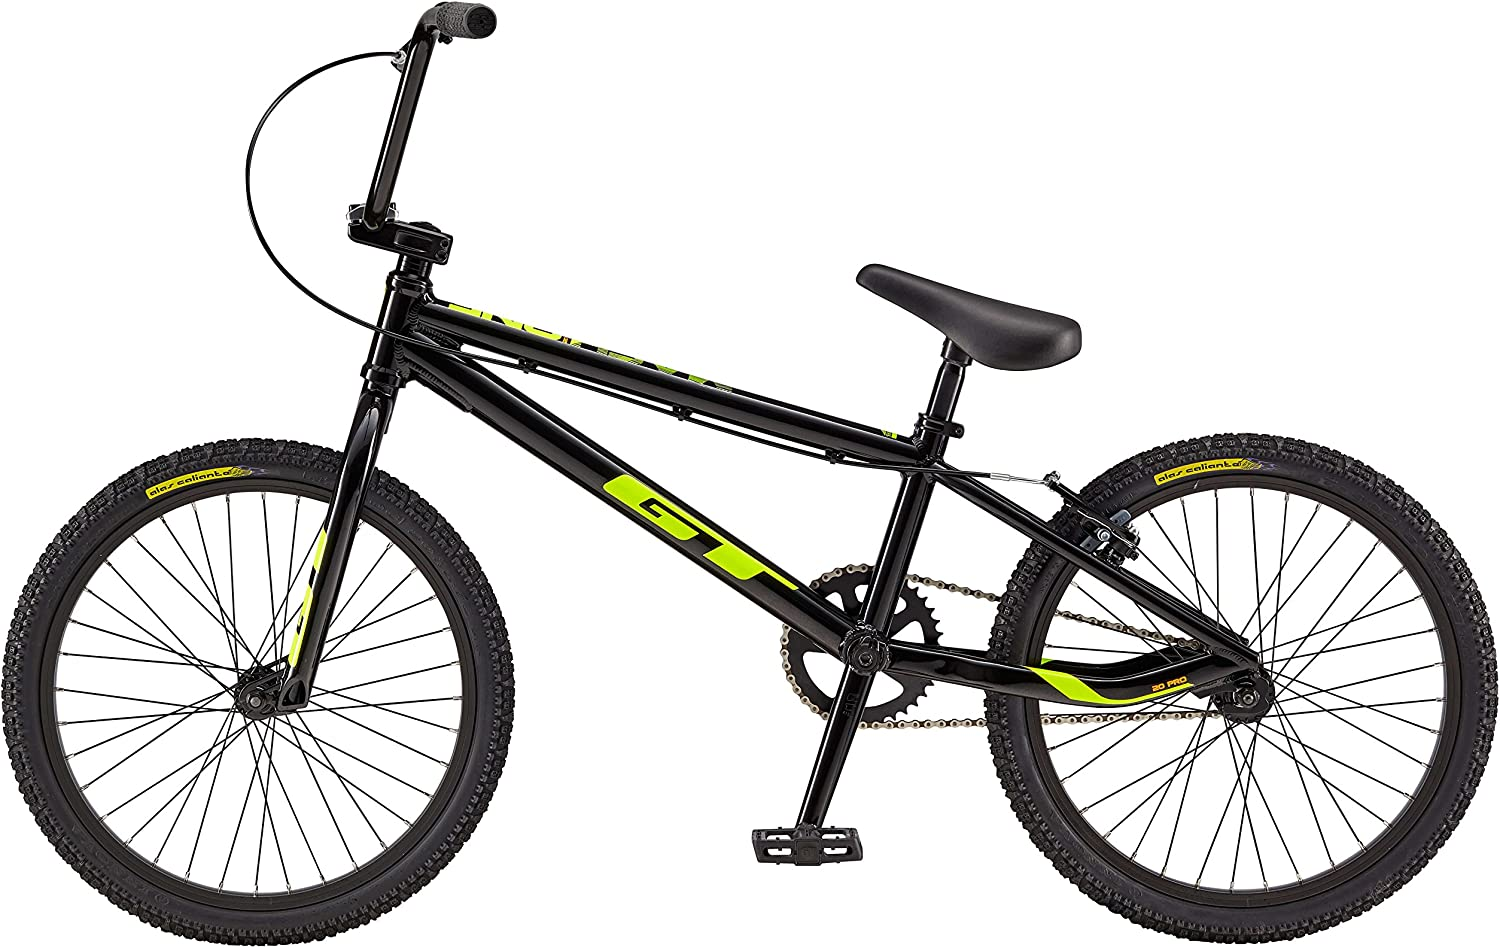 GT 751217M10LG Bicicleta, Unisex Adulto, Multicolor, 20: Amazon.es ...